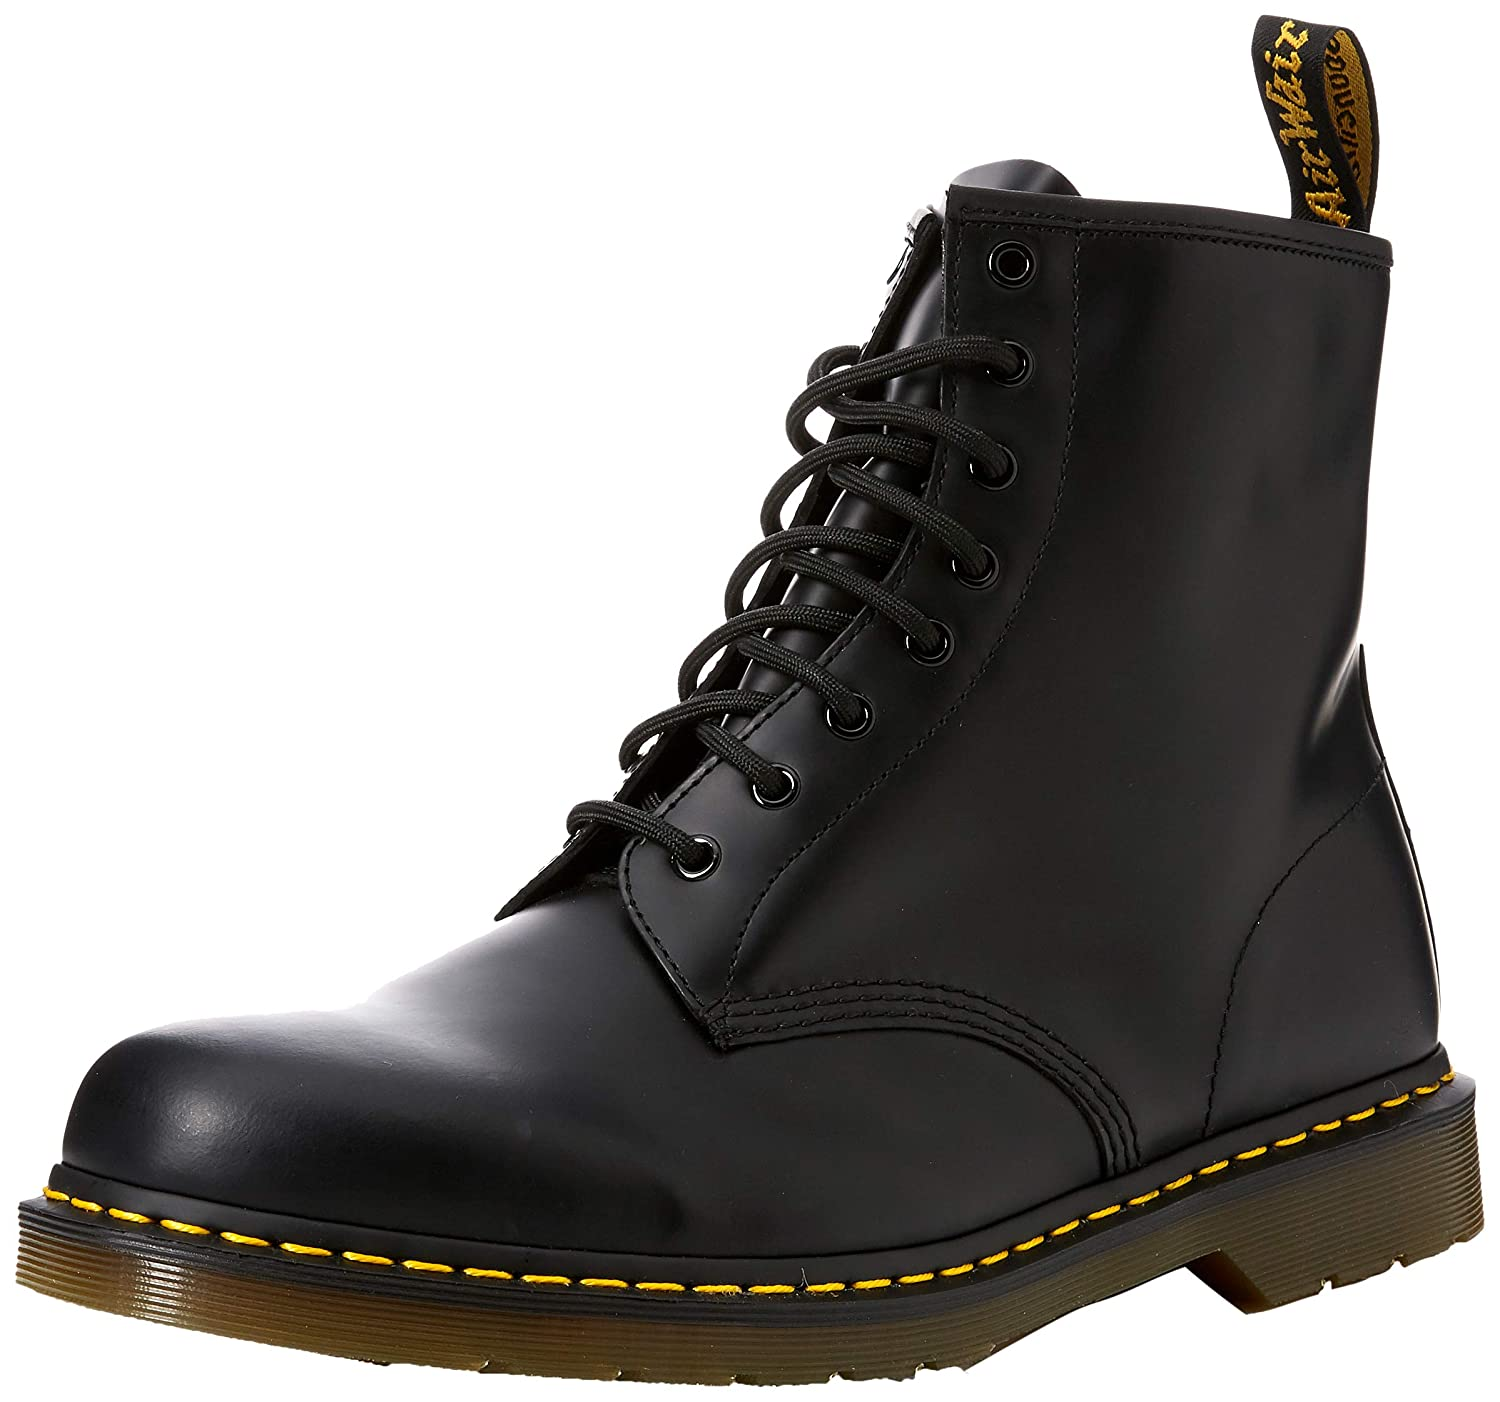 bd088661841b Dr. Martens 1460 Originals Eight-Eye Lace-Up Boot  Dr. Martens  Amazon.ca   Shoes   Handbags